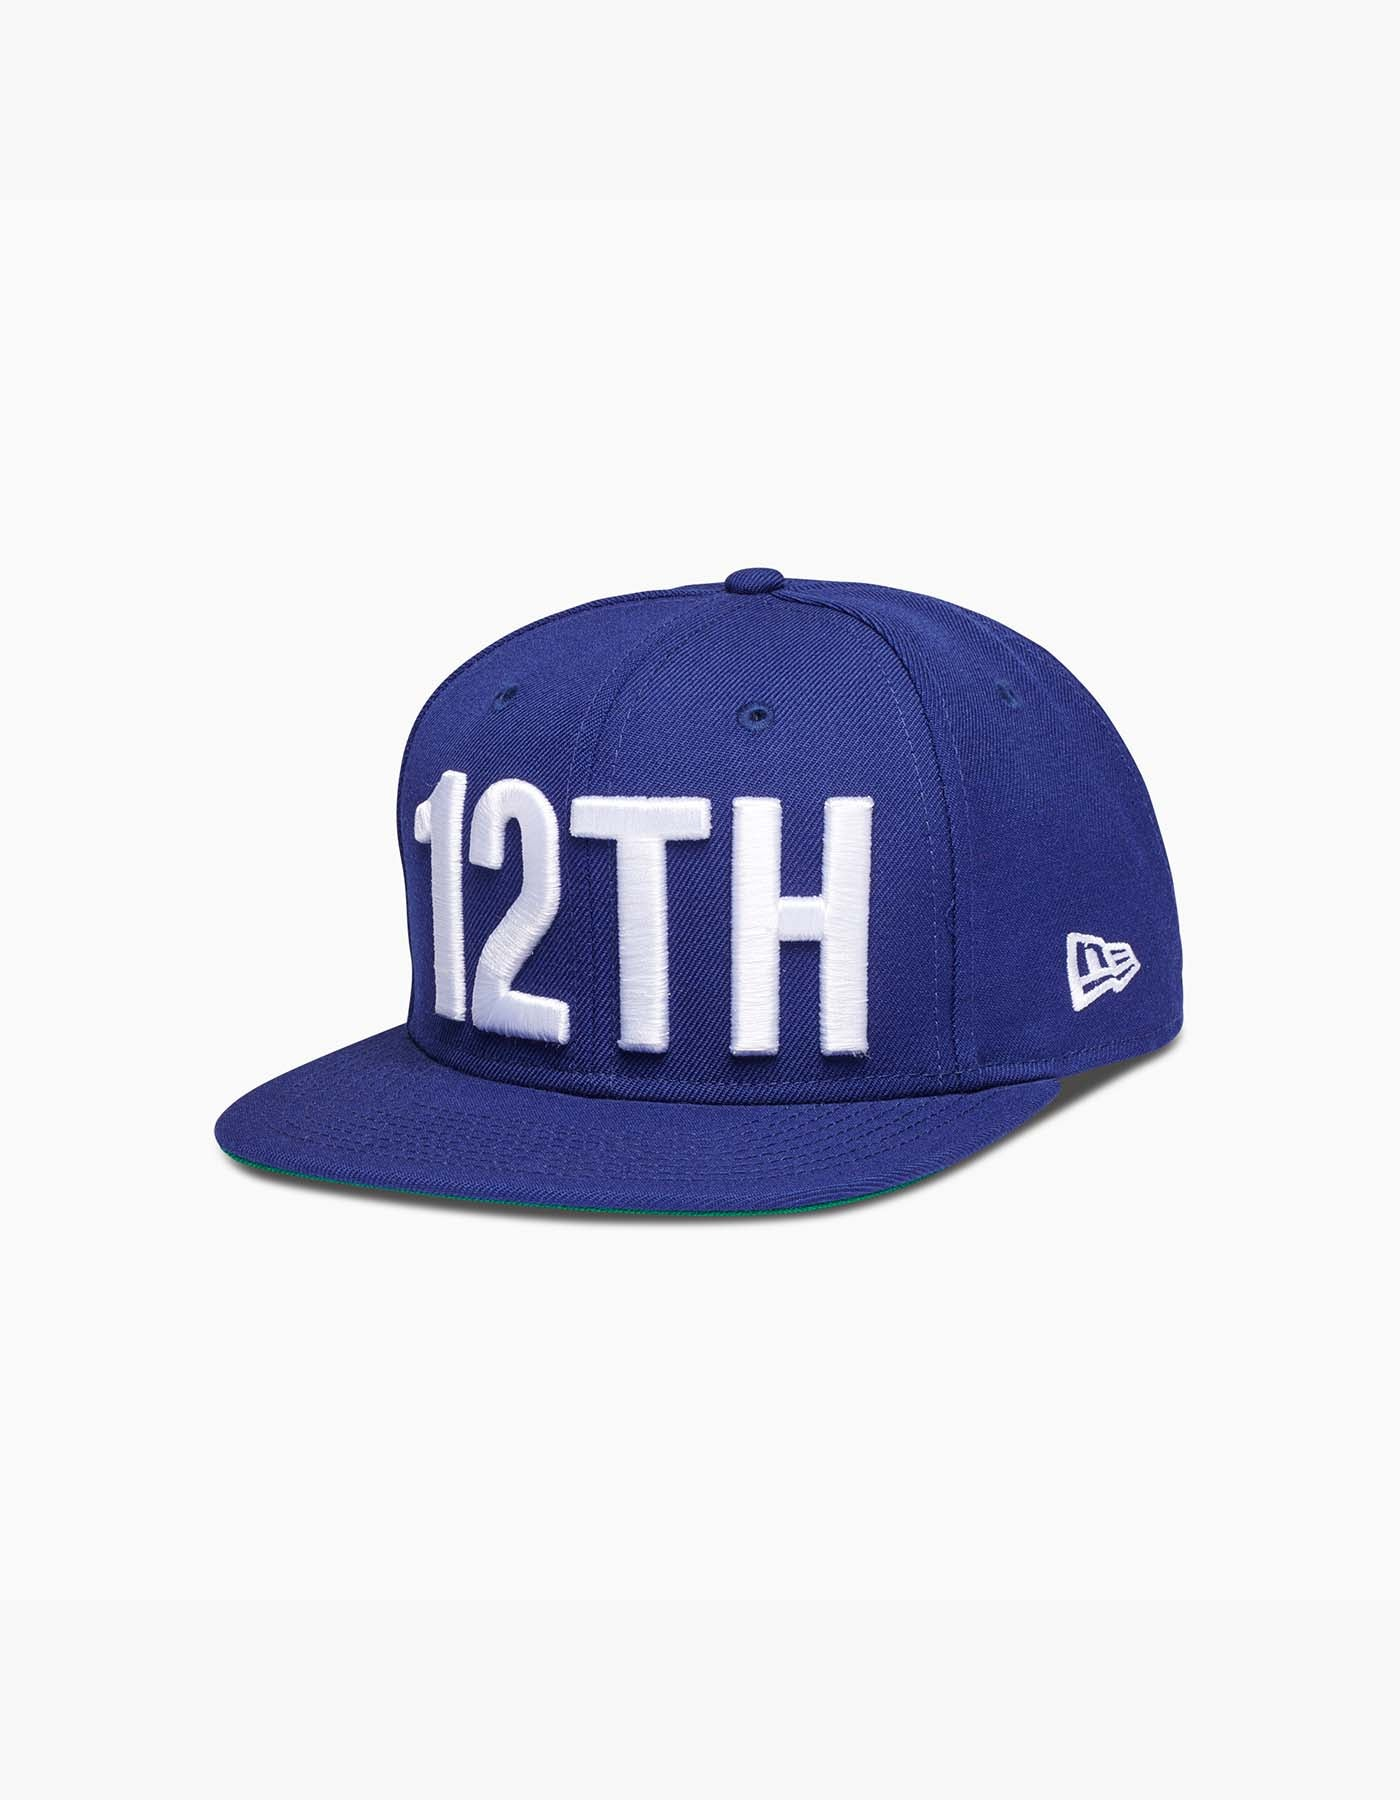 Insomniac Records - 12th Planet Hat